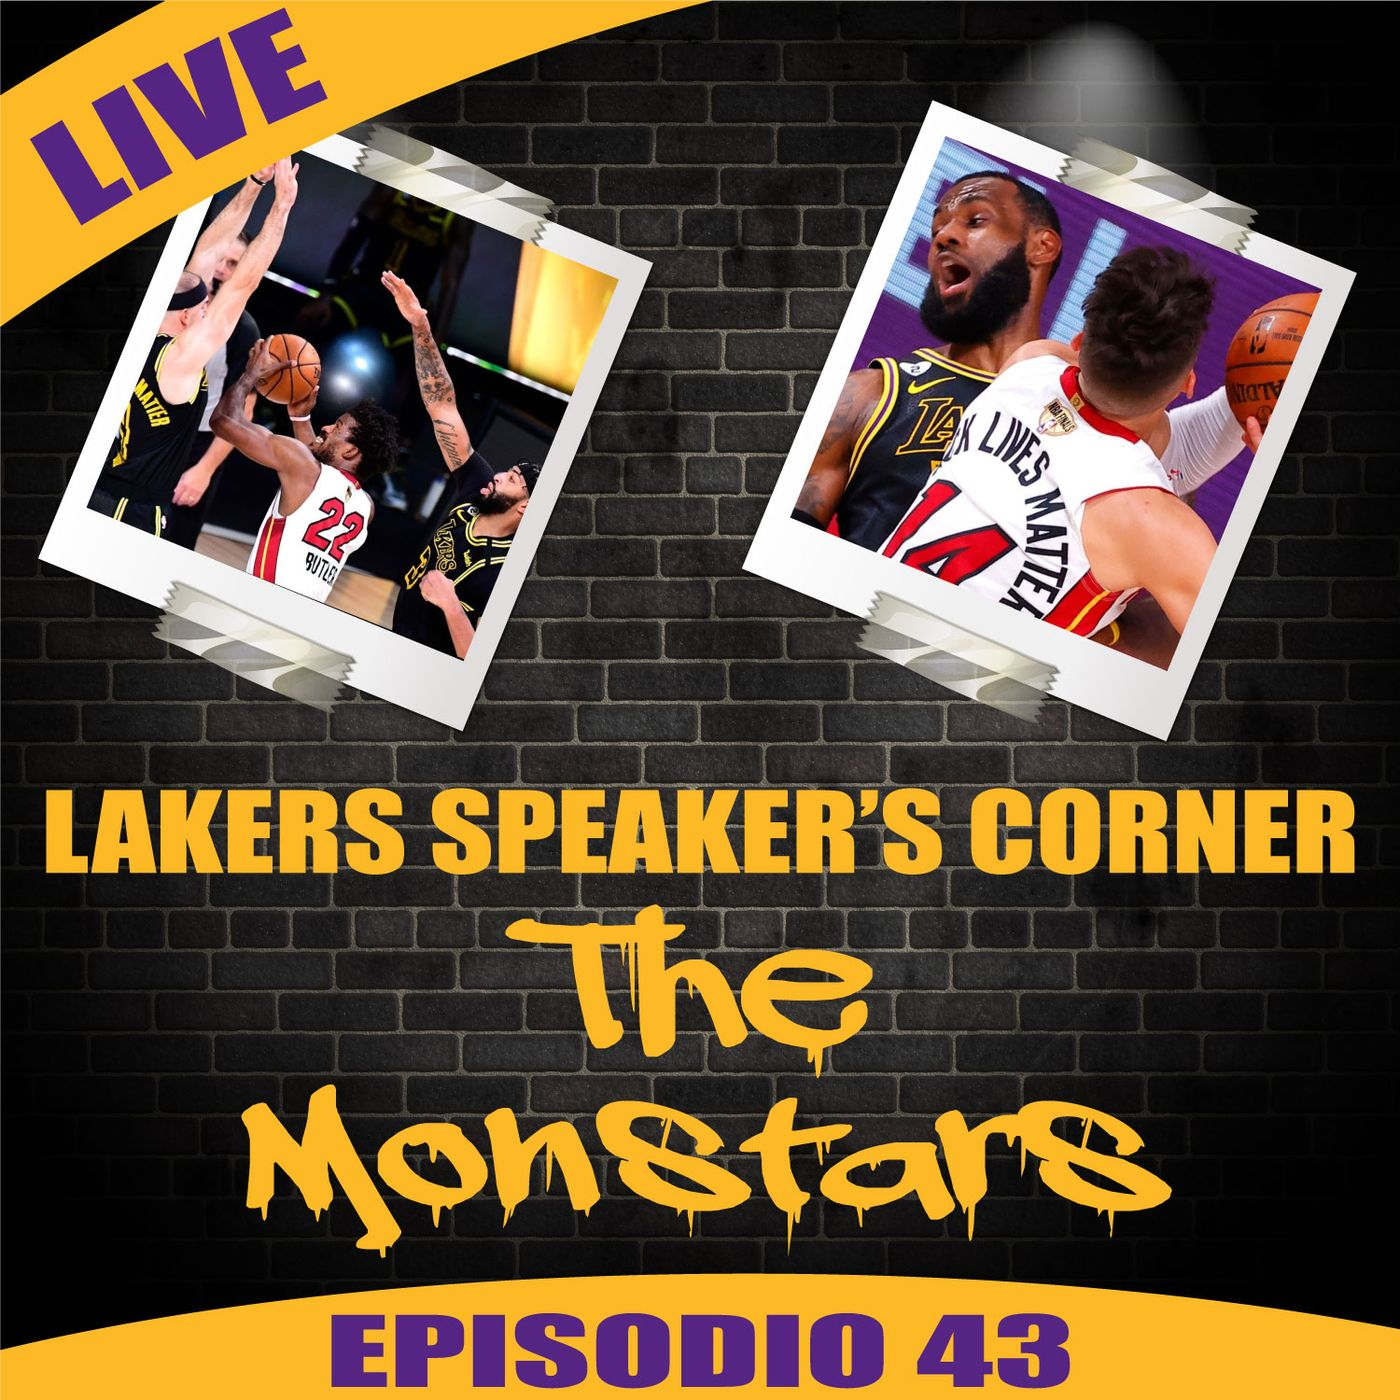 Lakers Speaker's Corner E43 - The Monstars